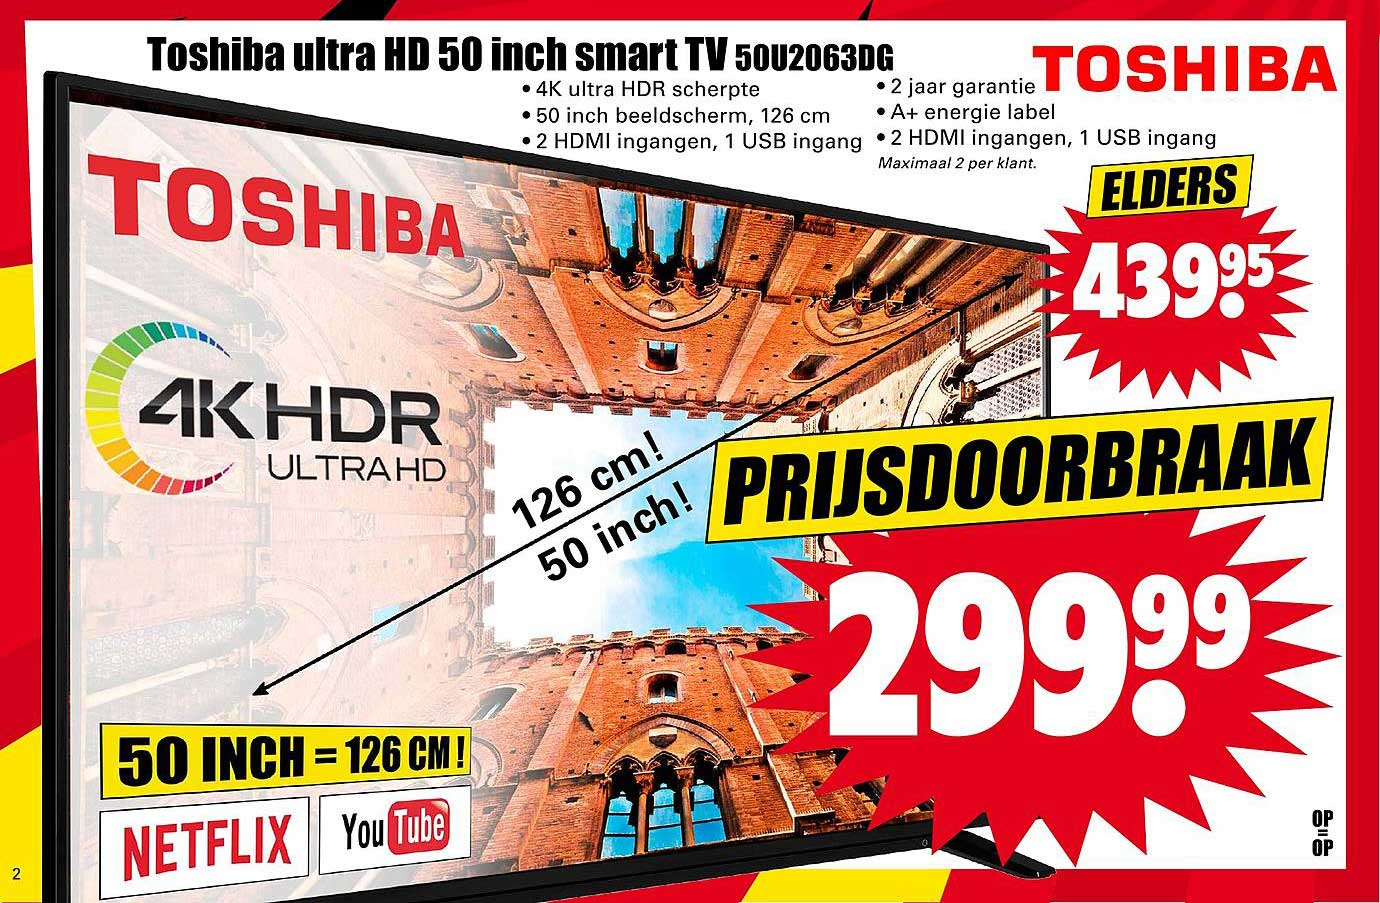 Dirk Toshiba Ultra HD 50 Inch Smart TV 50U2063DG